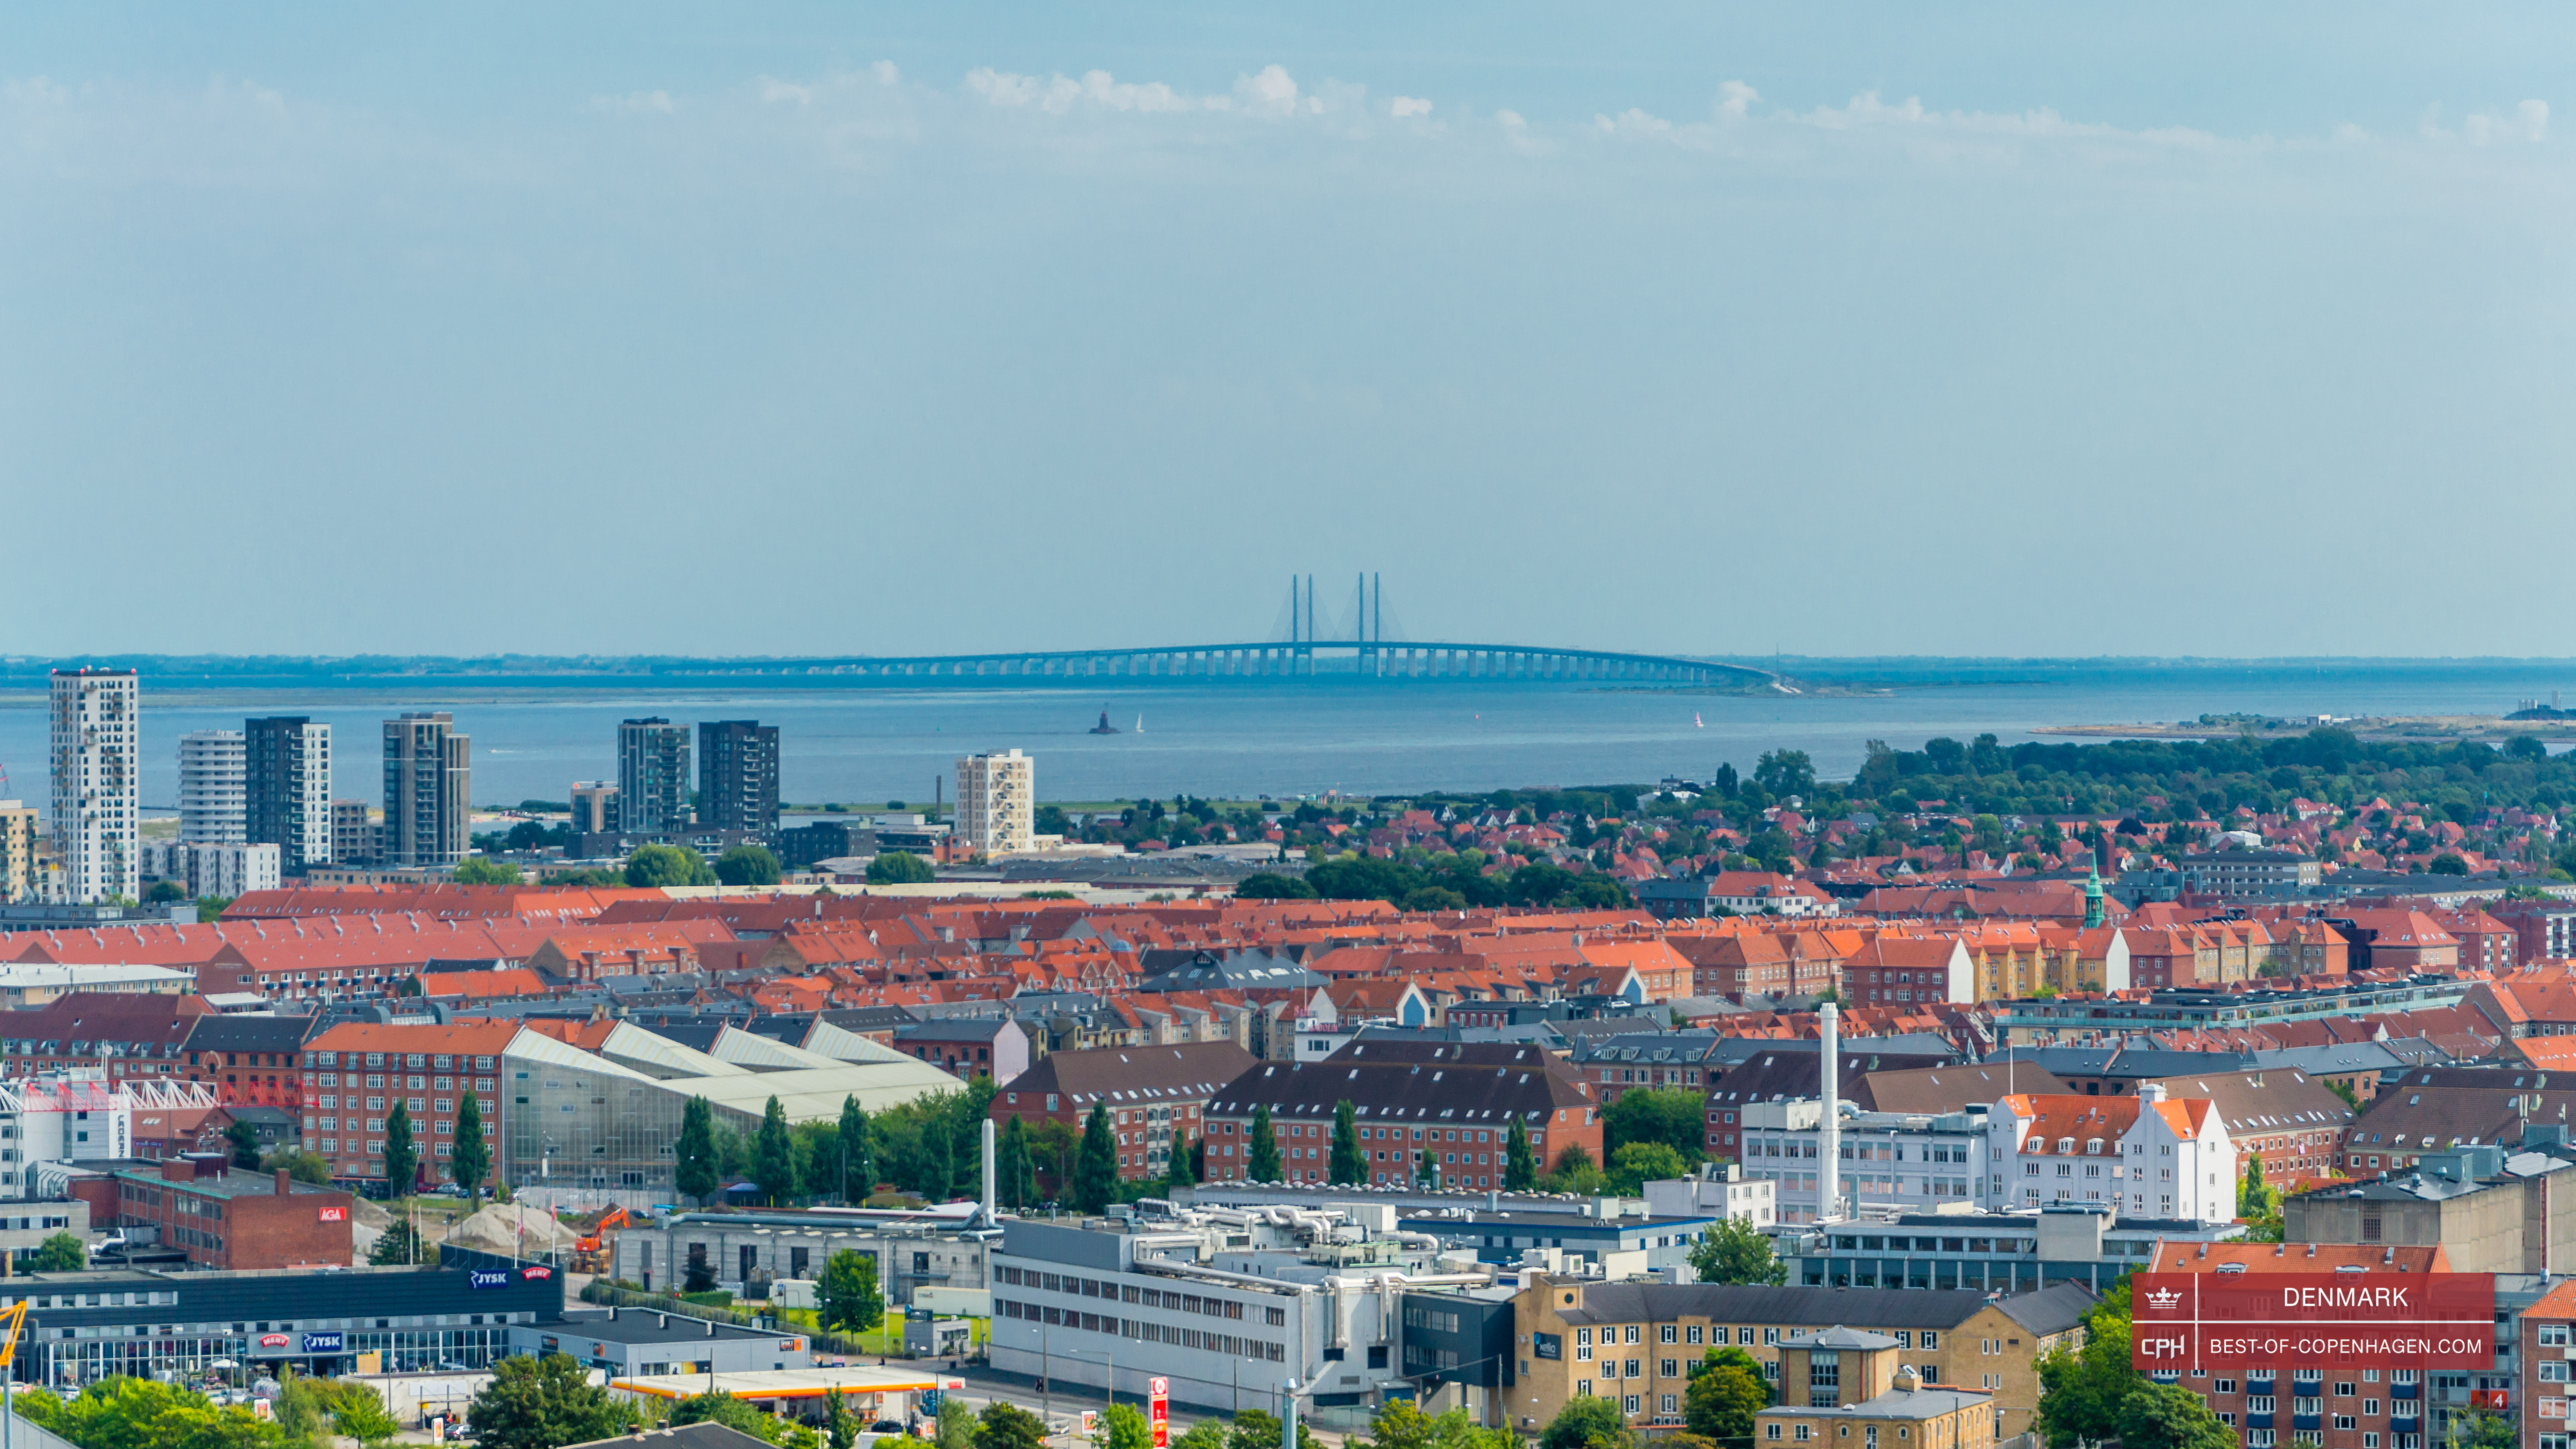 Oresund Bridge, view from the spire of the church of Our Saviour, Copenhagen, Denmark